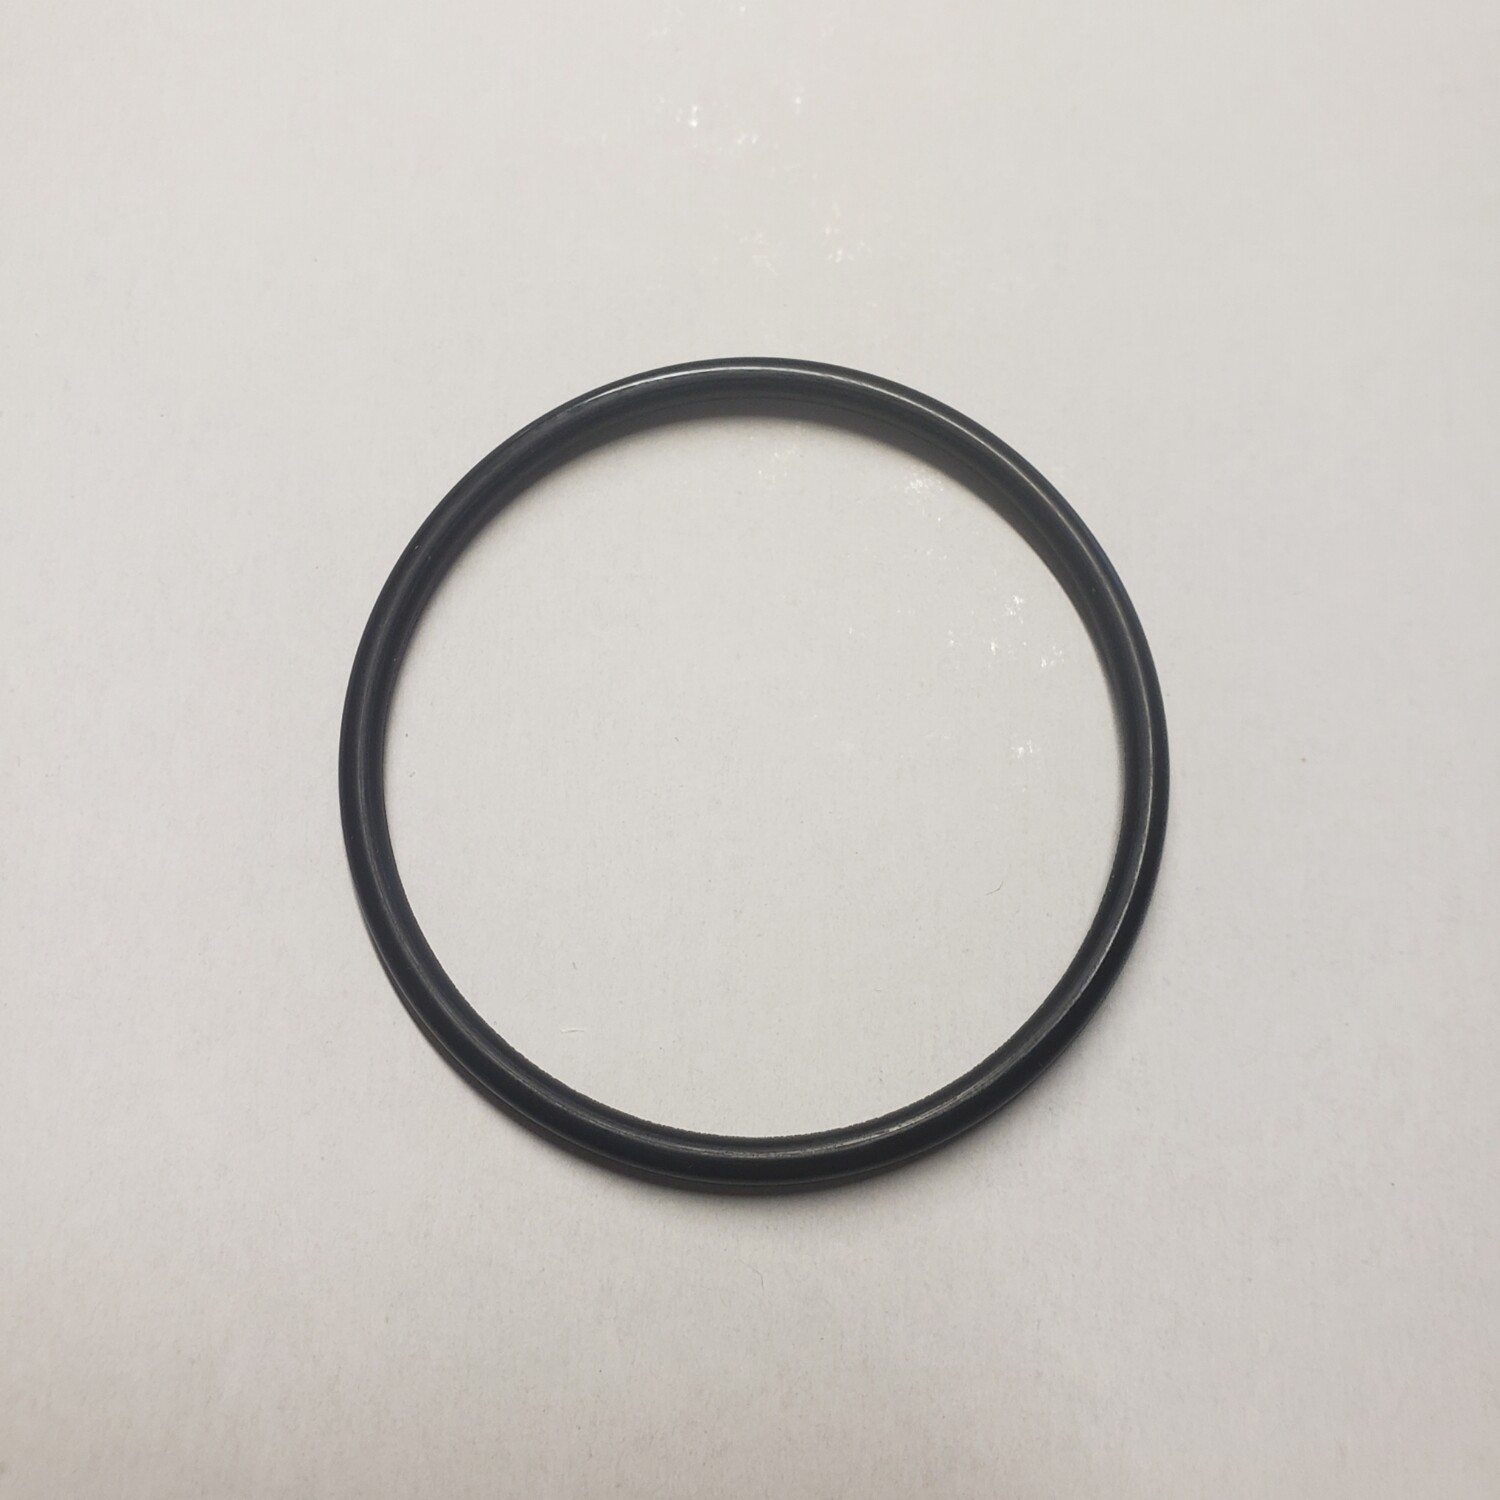 KLR650 O-Ring Oil Filter Cover 1987-2018